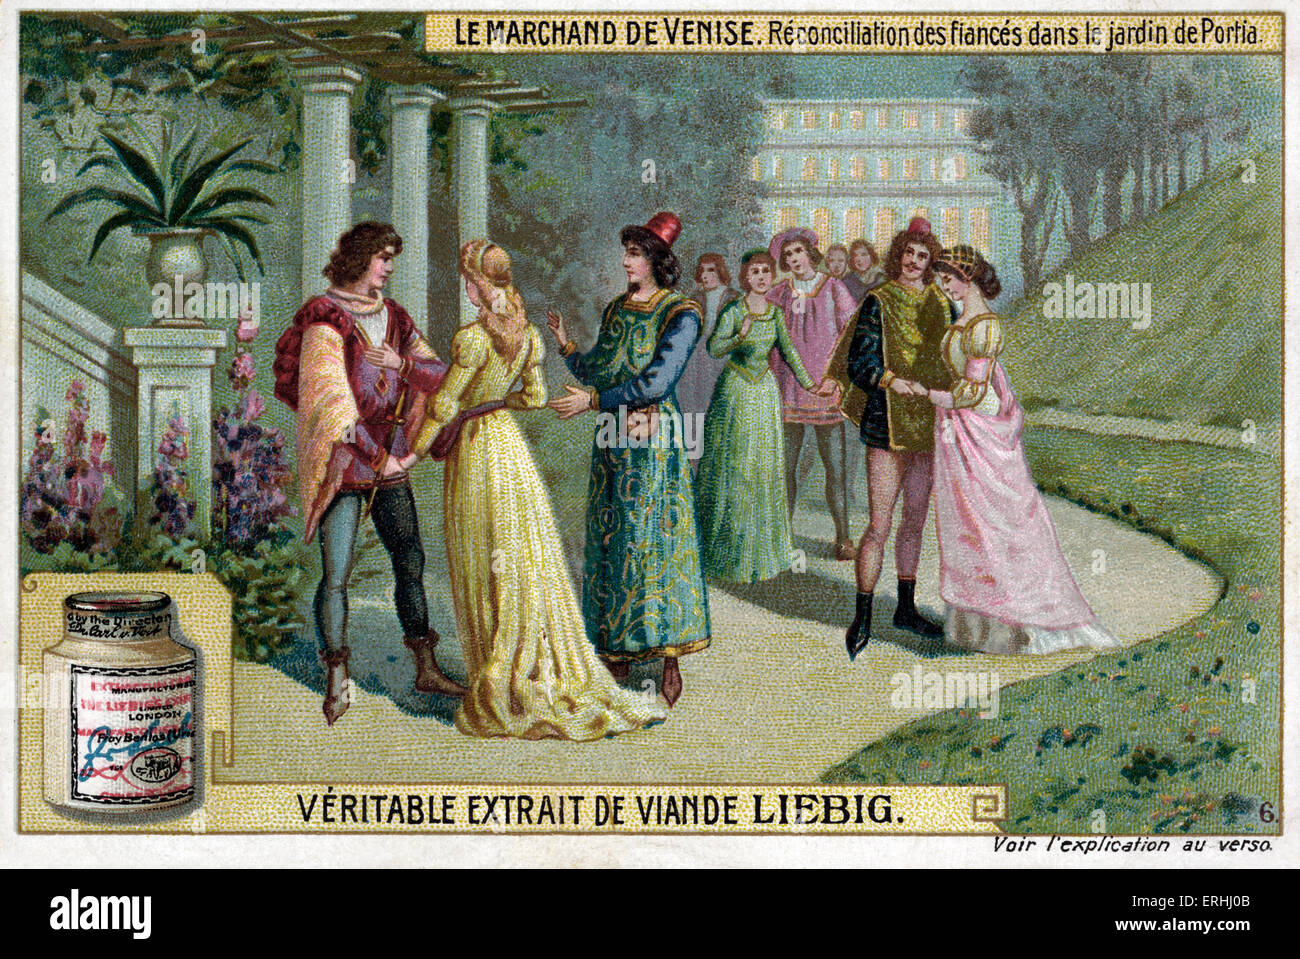 William Shakespeare 's play The Merchant of Venice - Reconcilliation of the fiances in Portia's garden. - Stock Image